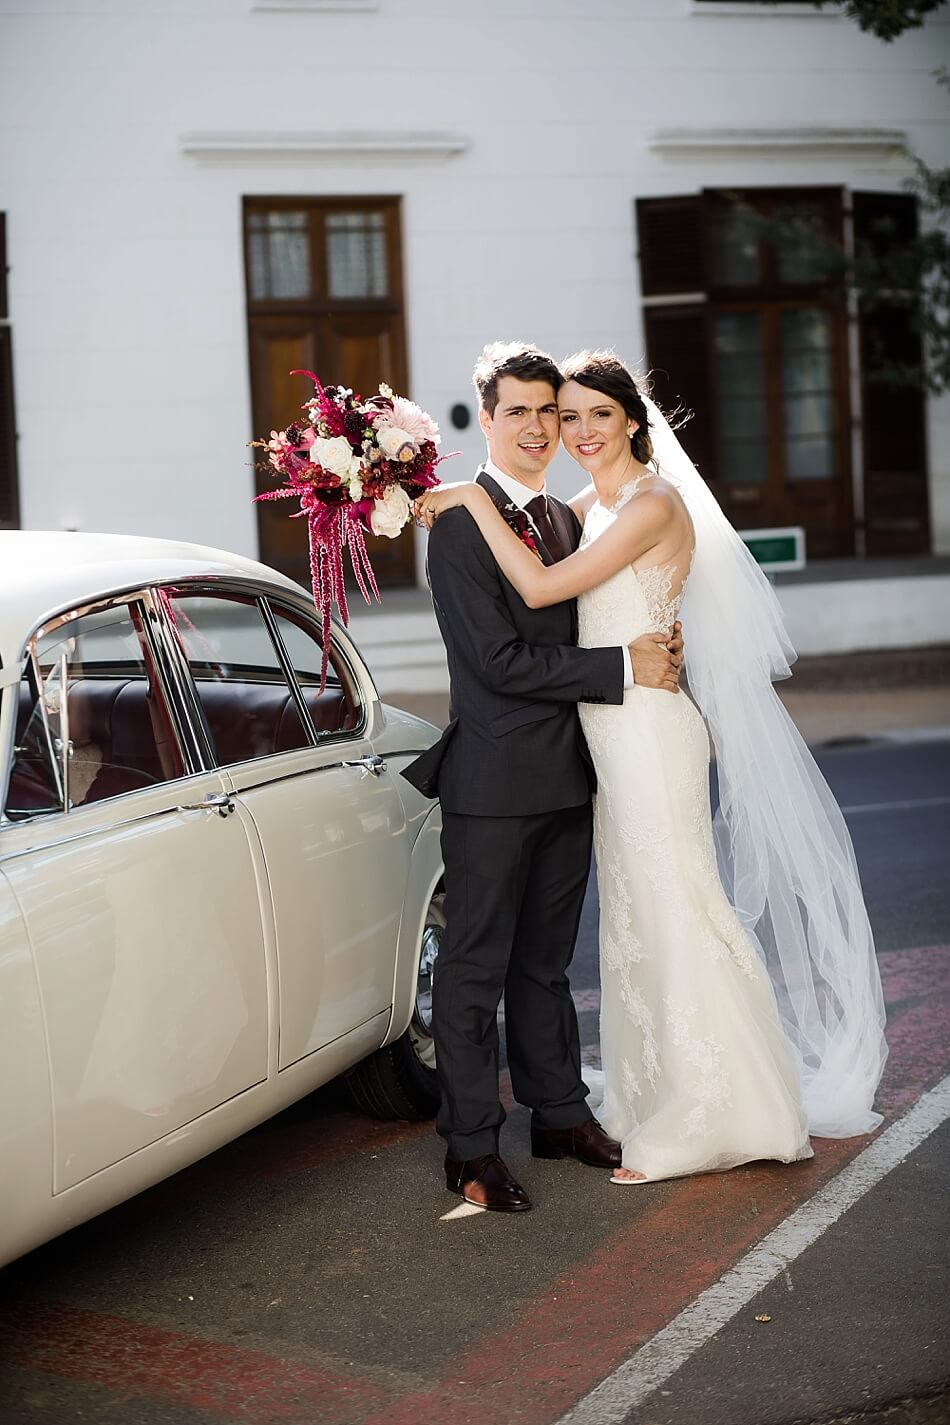 nikki-meyer_landtscap_stellenbosch_wedding_photographer_039